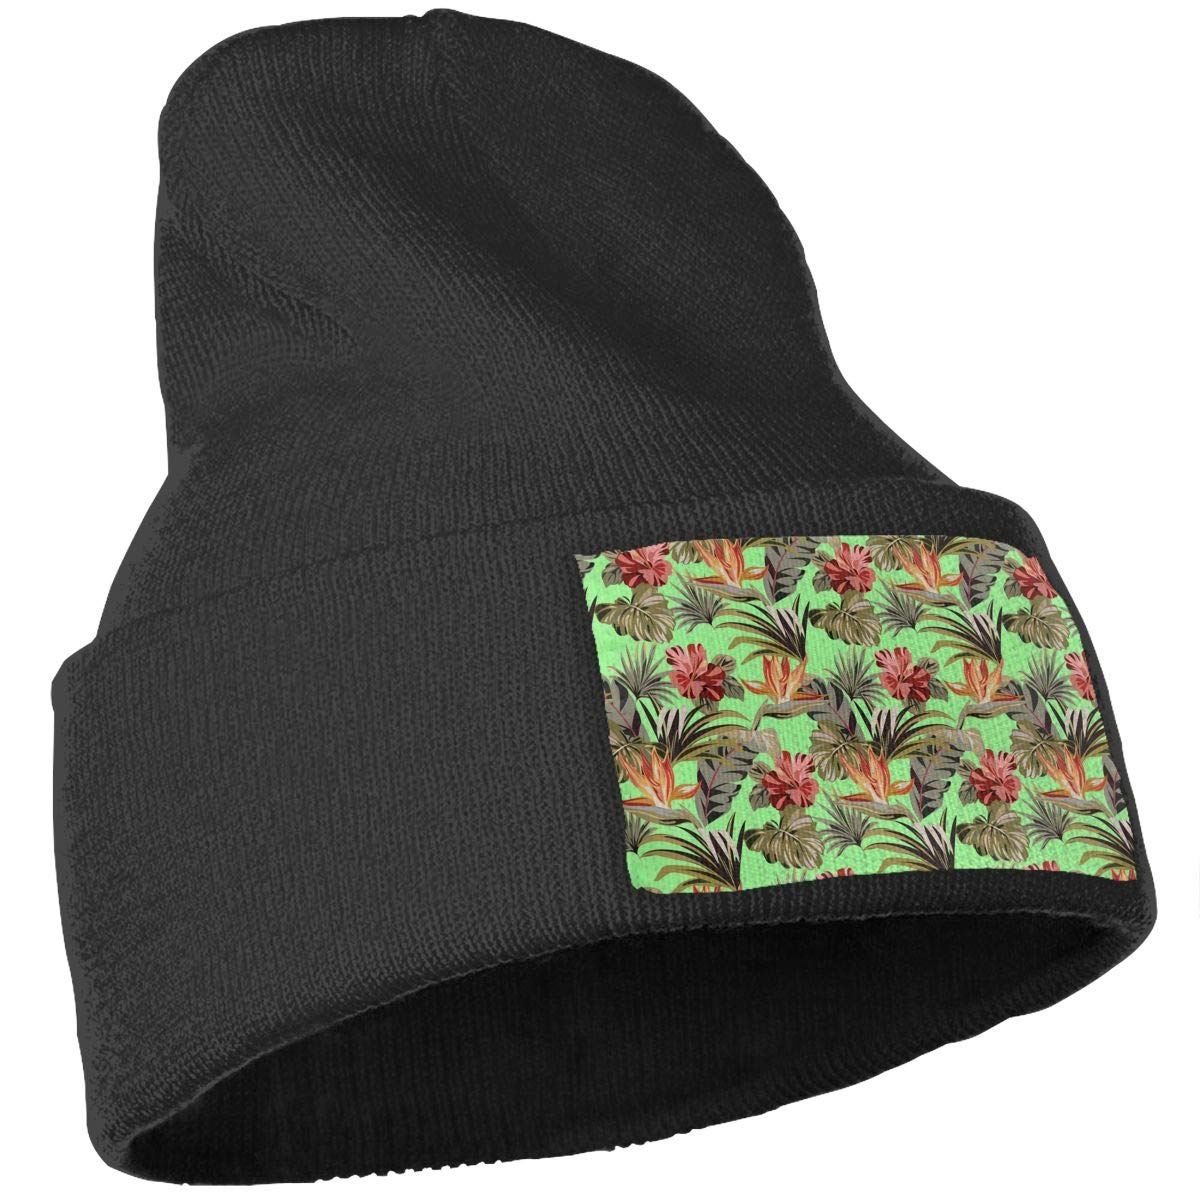 FORDSAN CP ChiRho The First Two Letters of The Greek Word Christ Mens Beanie Cap Skull Cap Winter Warm Knitting Hats.